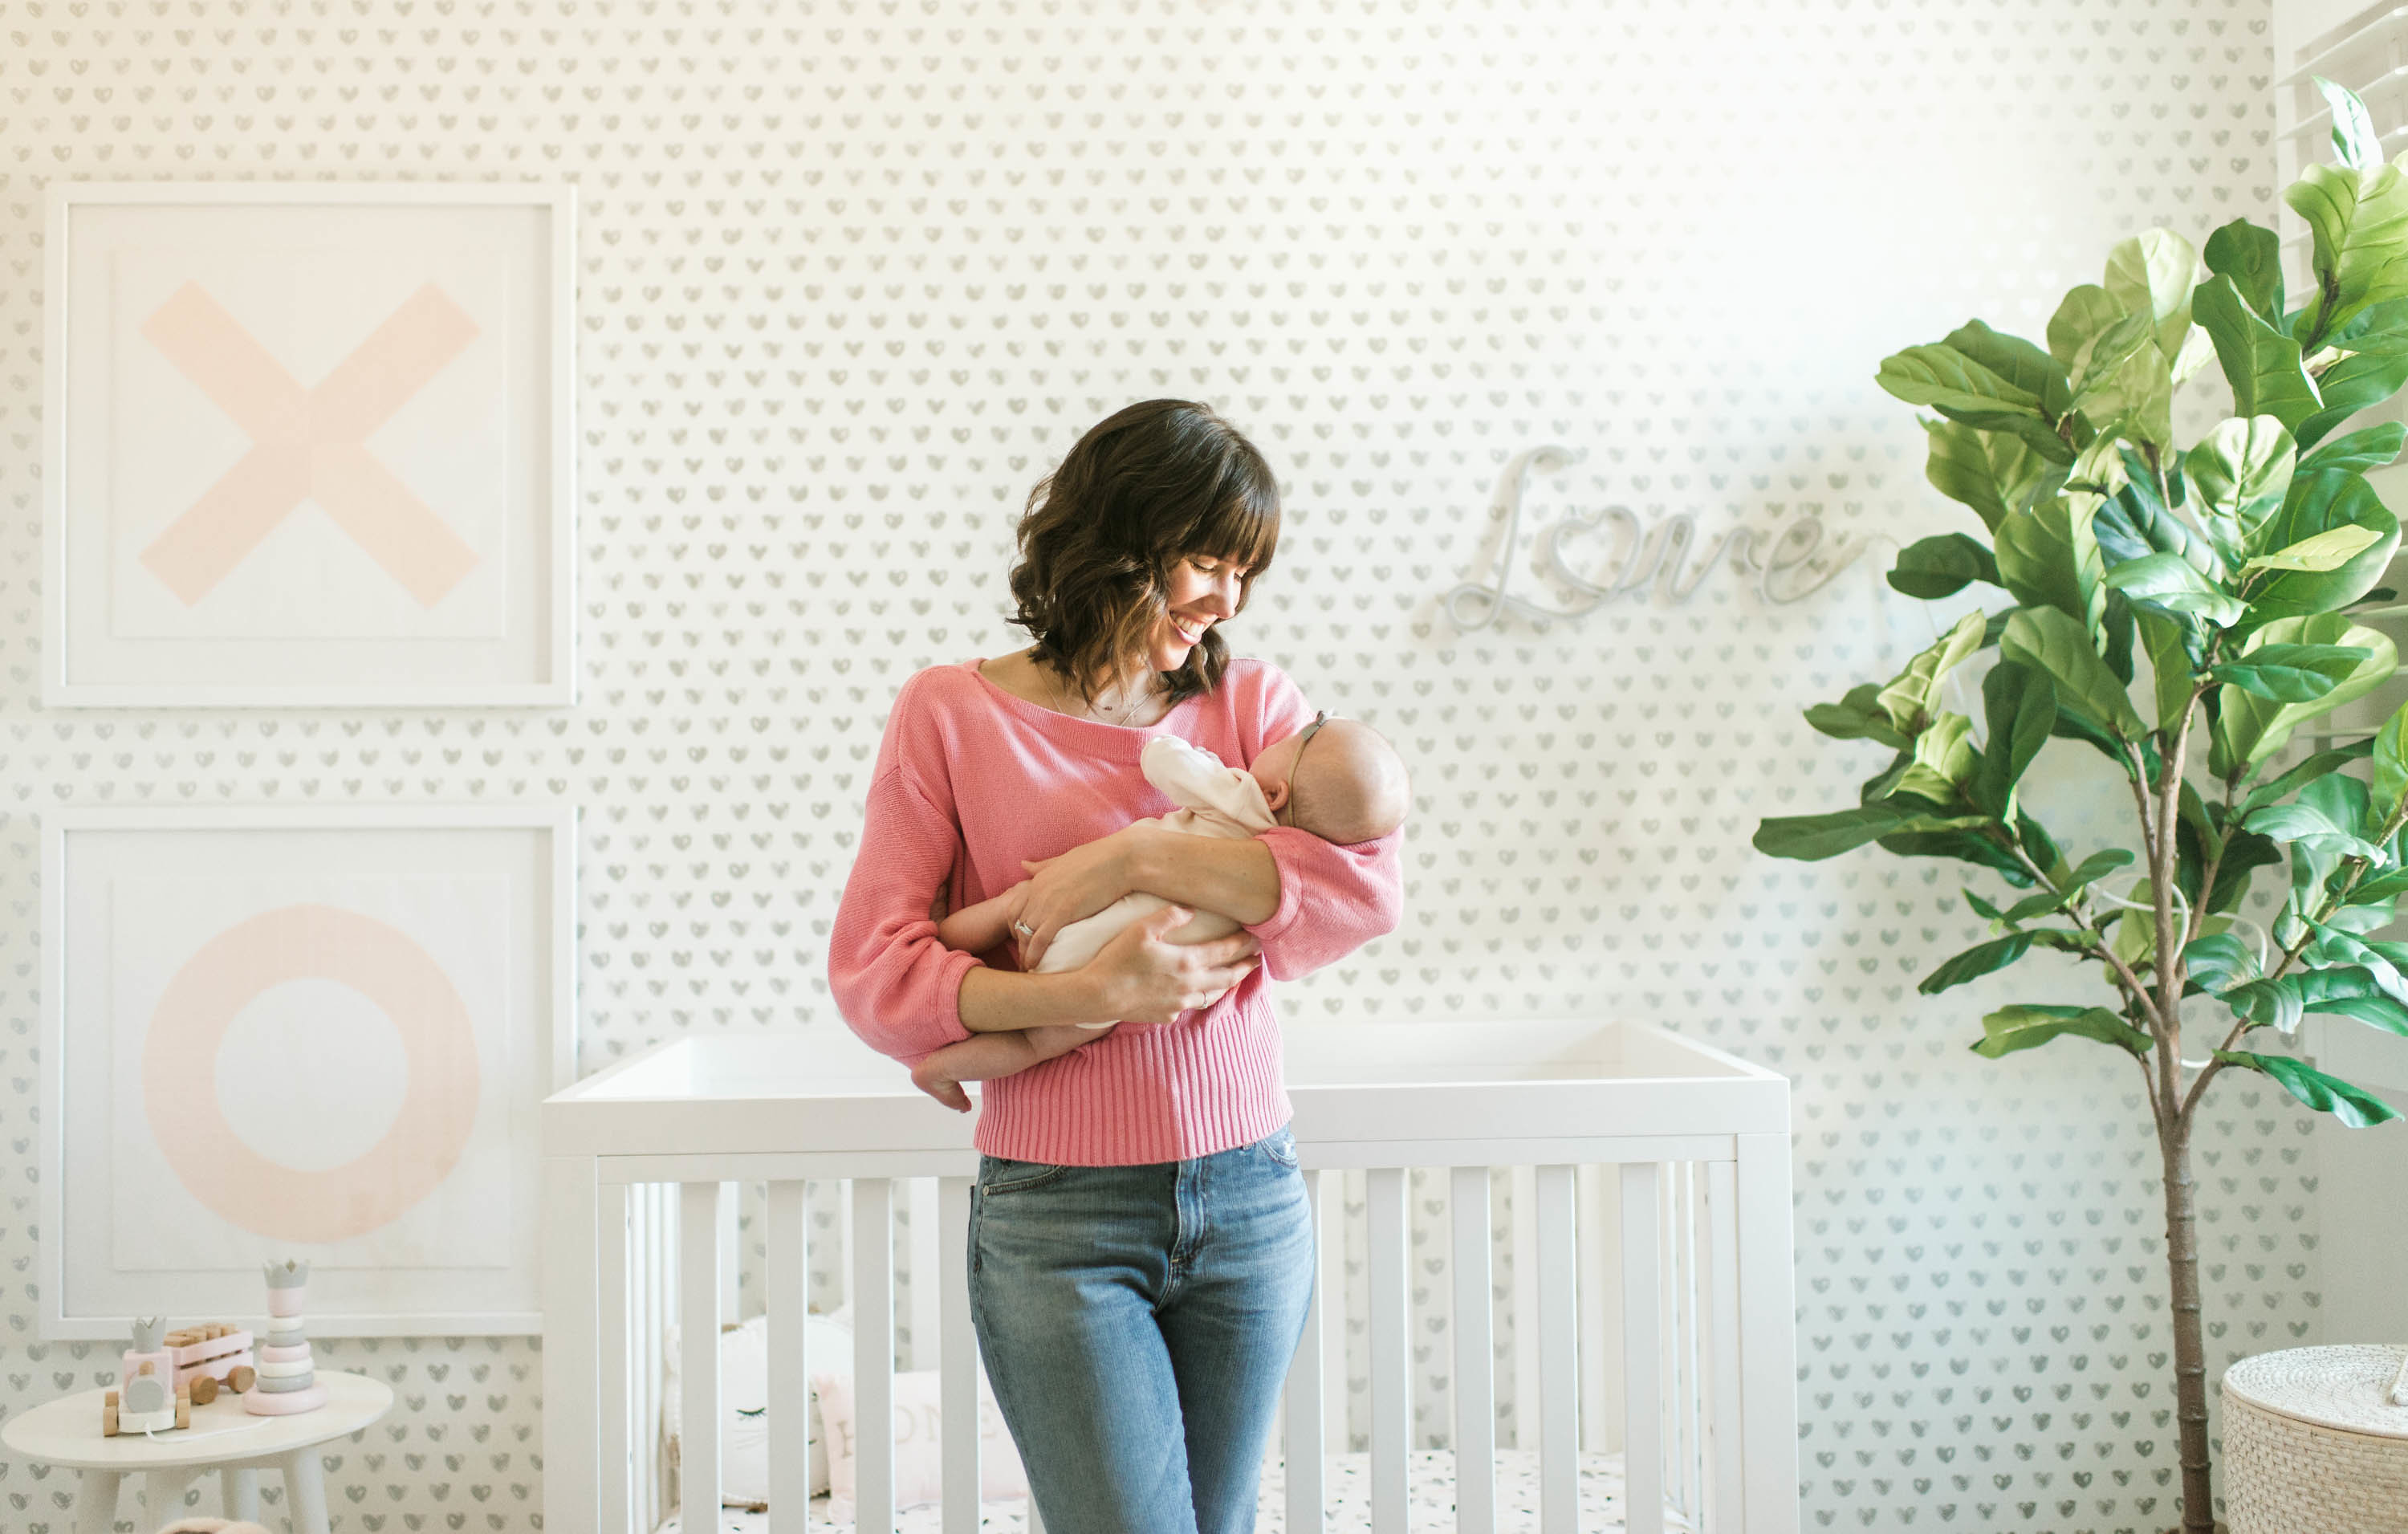 XO Nursery with Heart Wallpaper and Faux Fiddle Leaf Fig